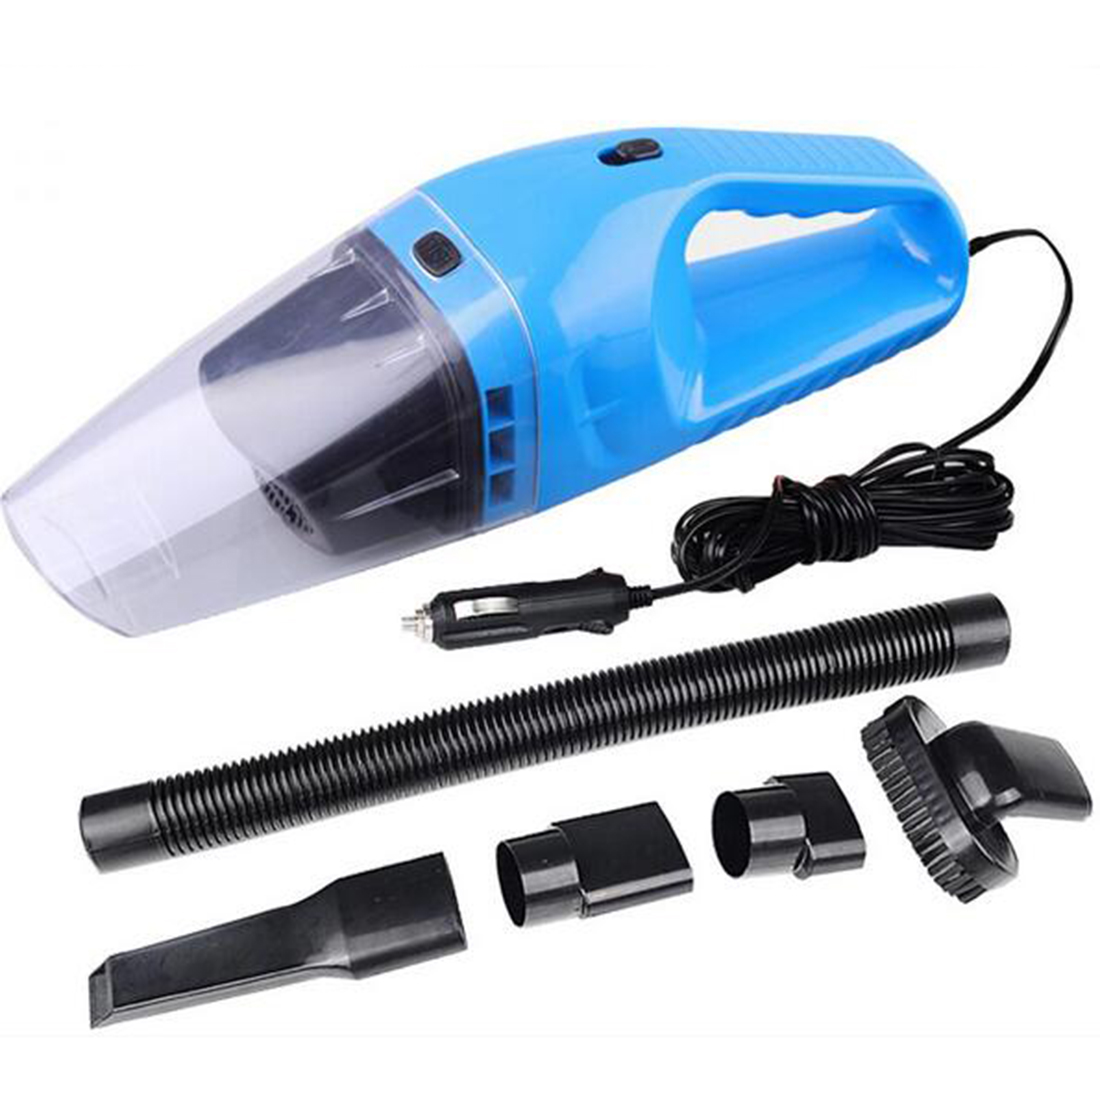 Portable Electric Vacuum Cleaners : Free shipping autos parts portable car vacuum cleaner wet